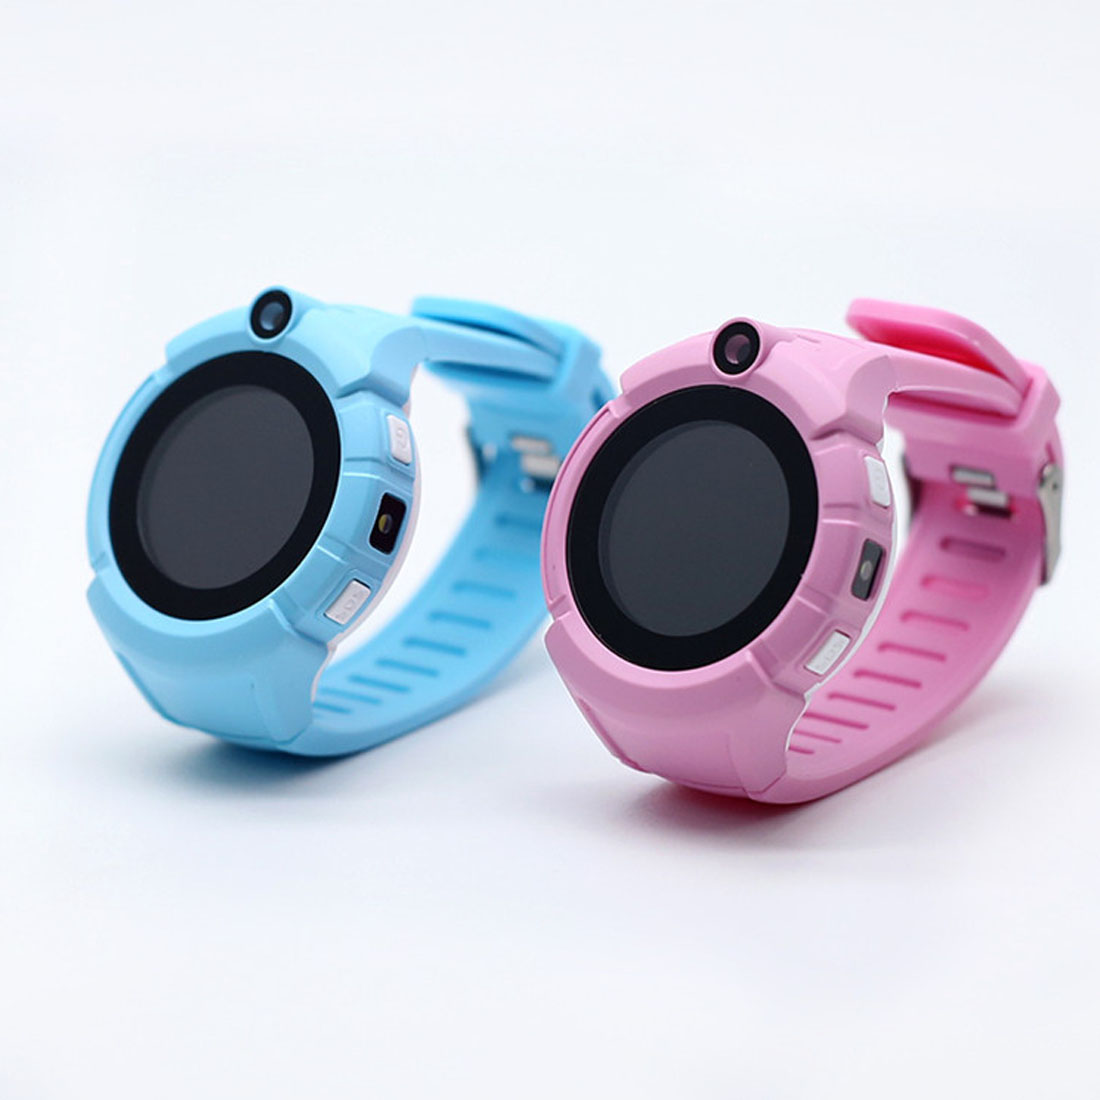 все цены на Q360 Kids Round Screen Smart Watch with Camera GPS WIFI Location Child smartwatch SOS Anti-Lost Monitor Tracker baby WristWatch онлайн